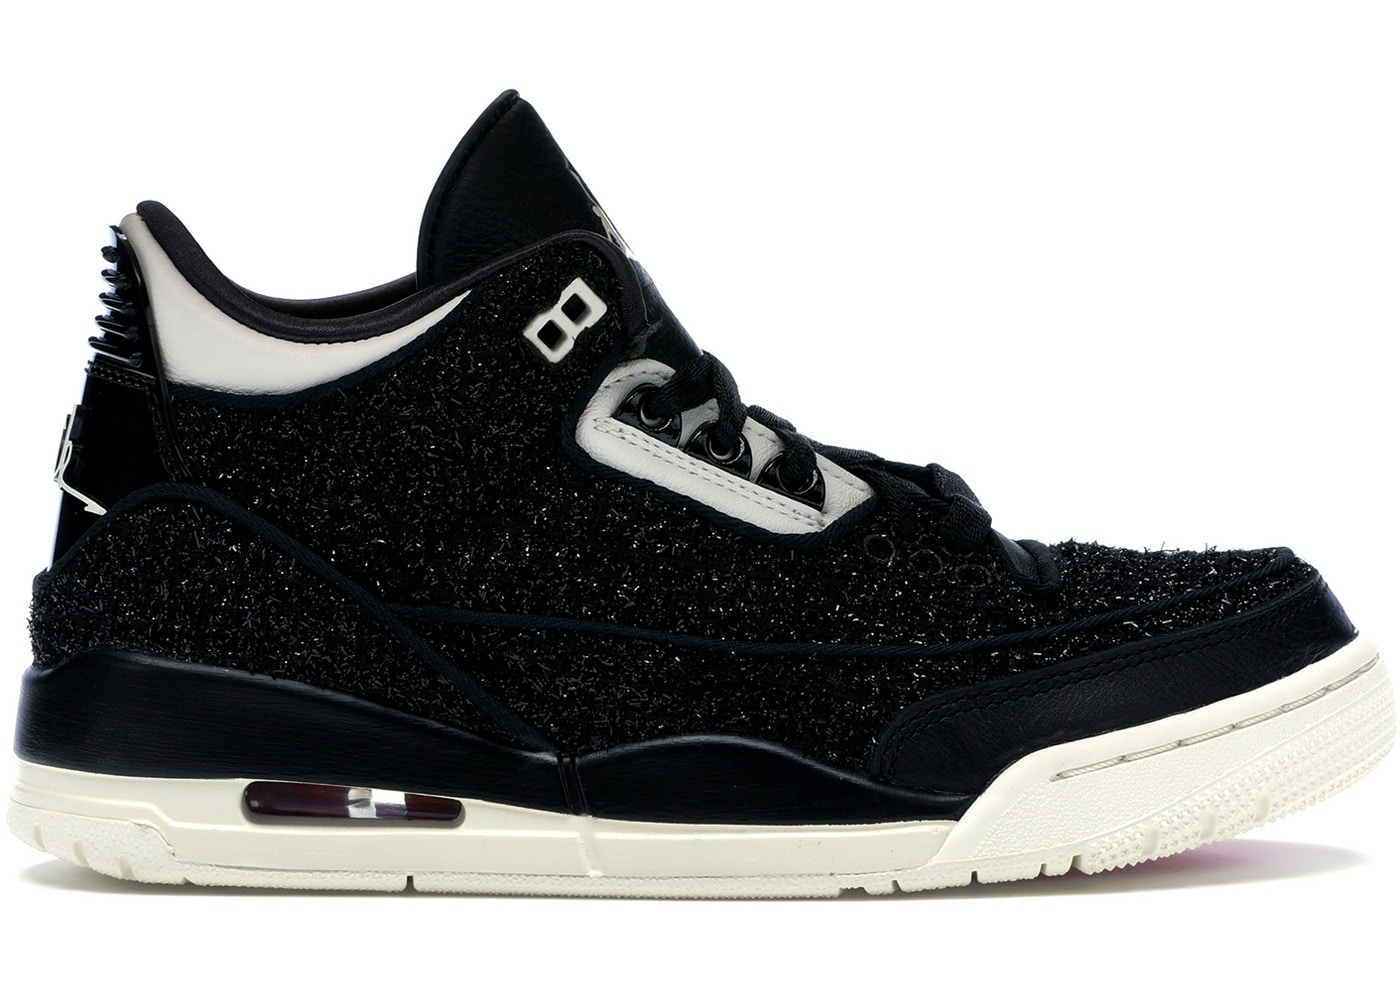 reputable site 3ee78 6e4bd Buy Air Jordan 3 Shoes   Deadstock Sneakers